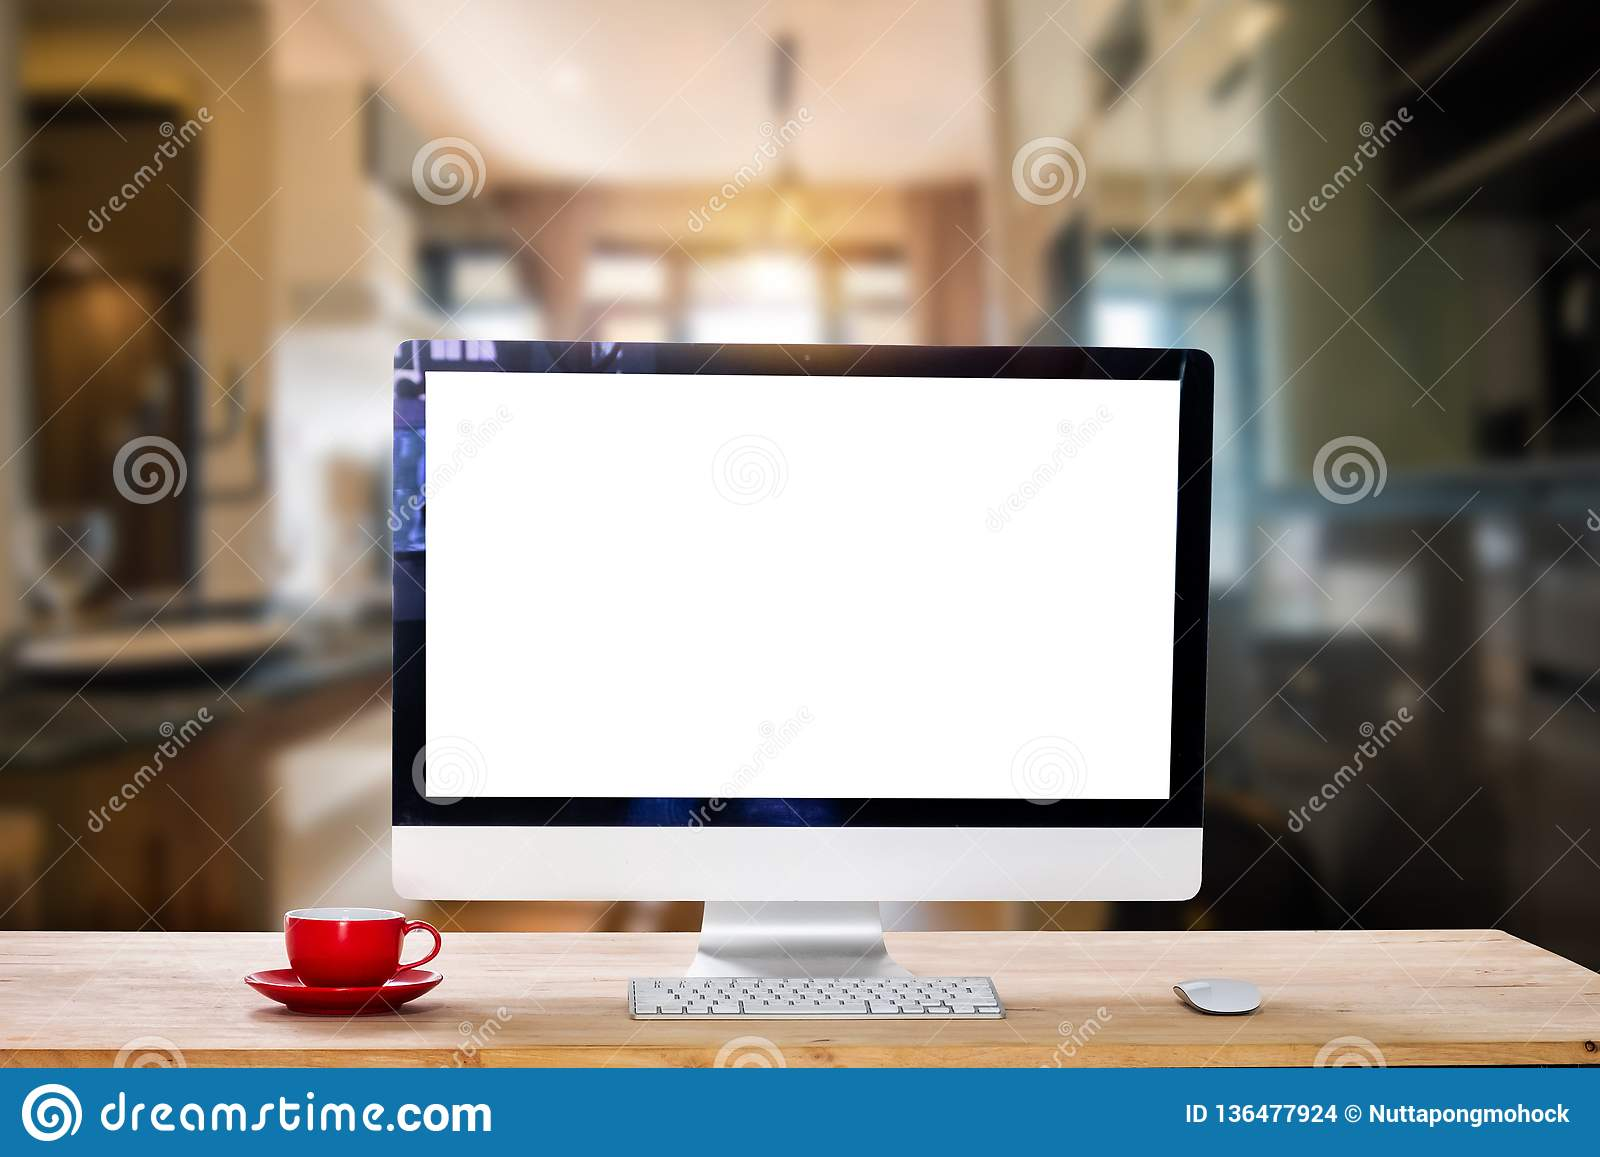 Computer Monitor, Keyboard, Coffee Cup Stock Photo   Image of ...